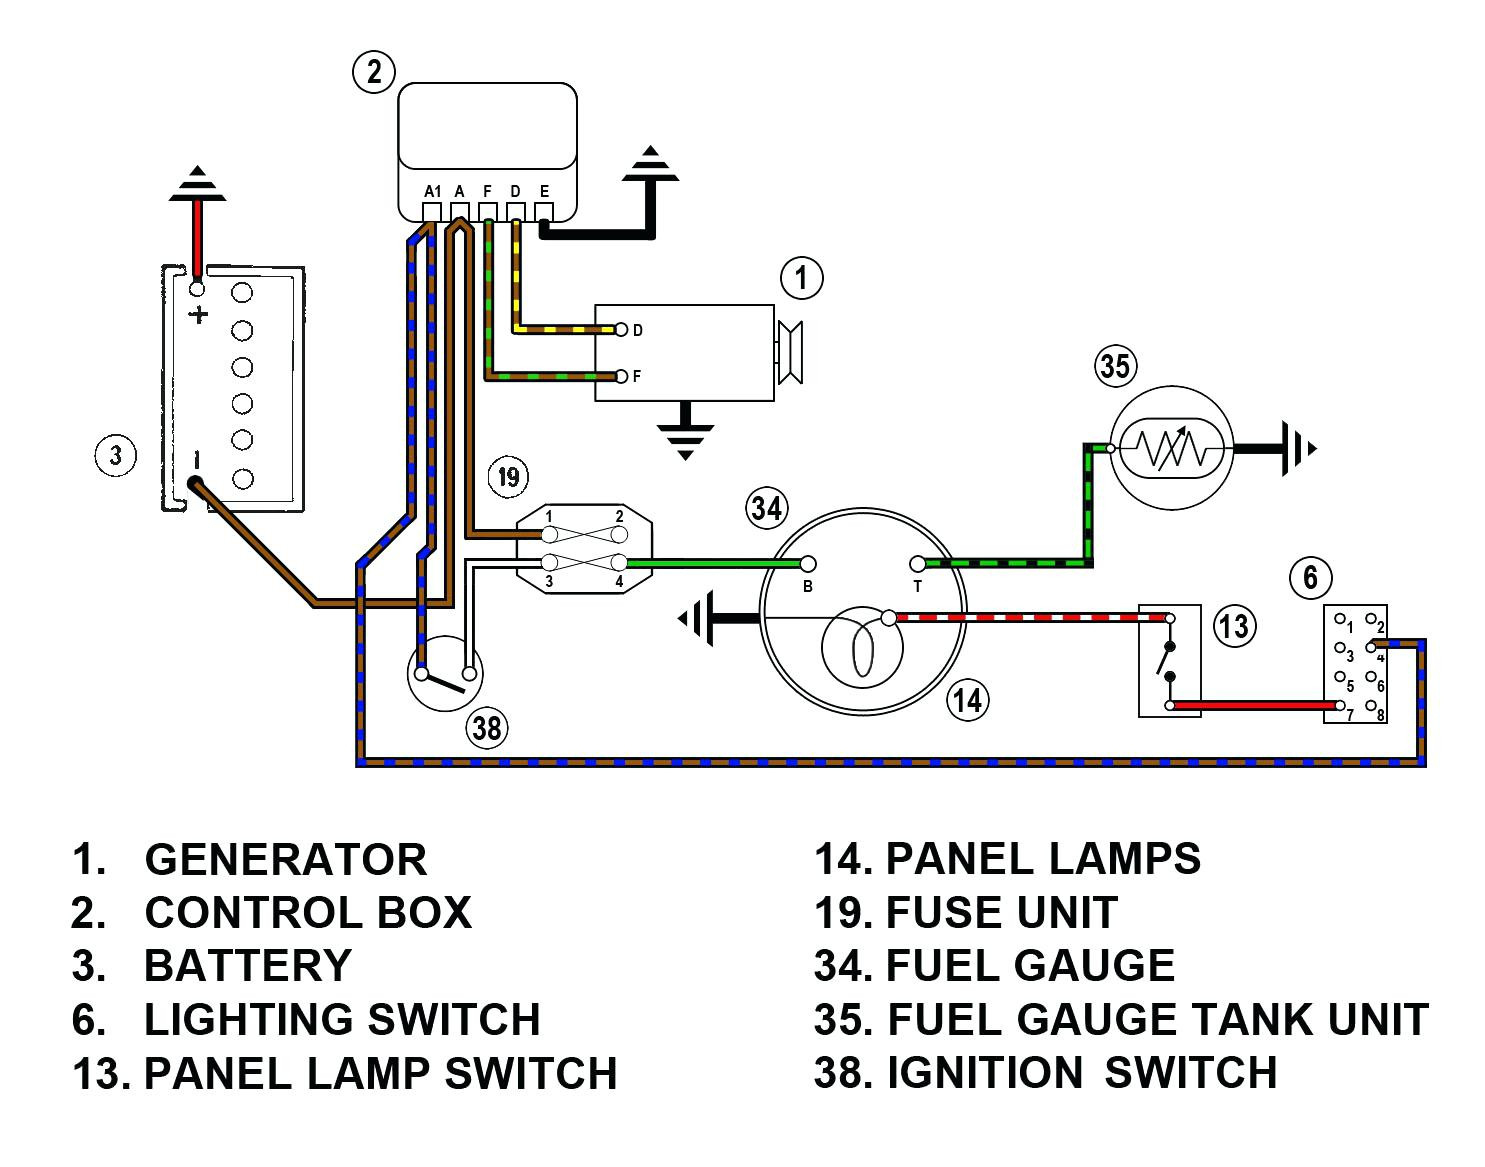 Chevelle Fuel Sending Unit Wiring Diagram | Wiring Liry on